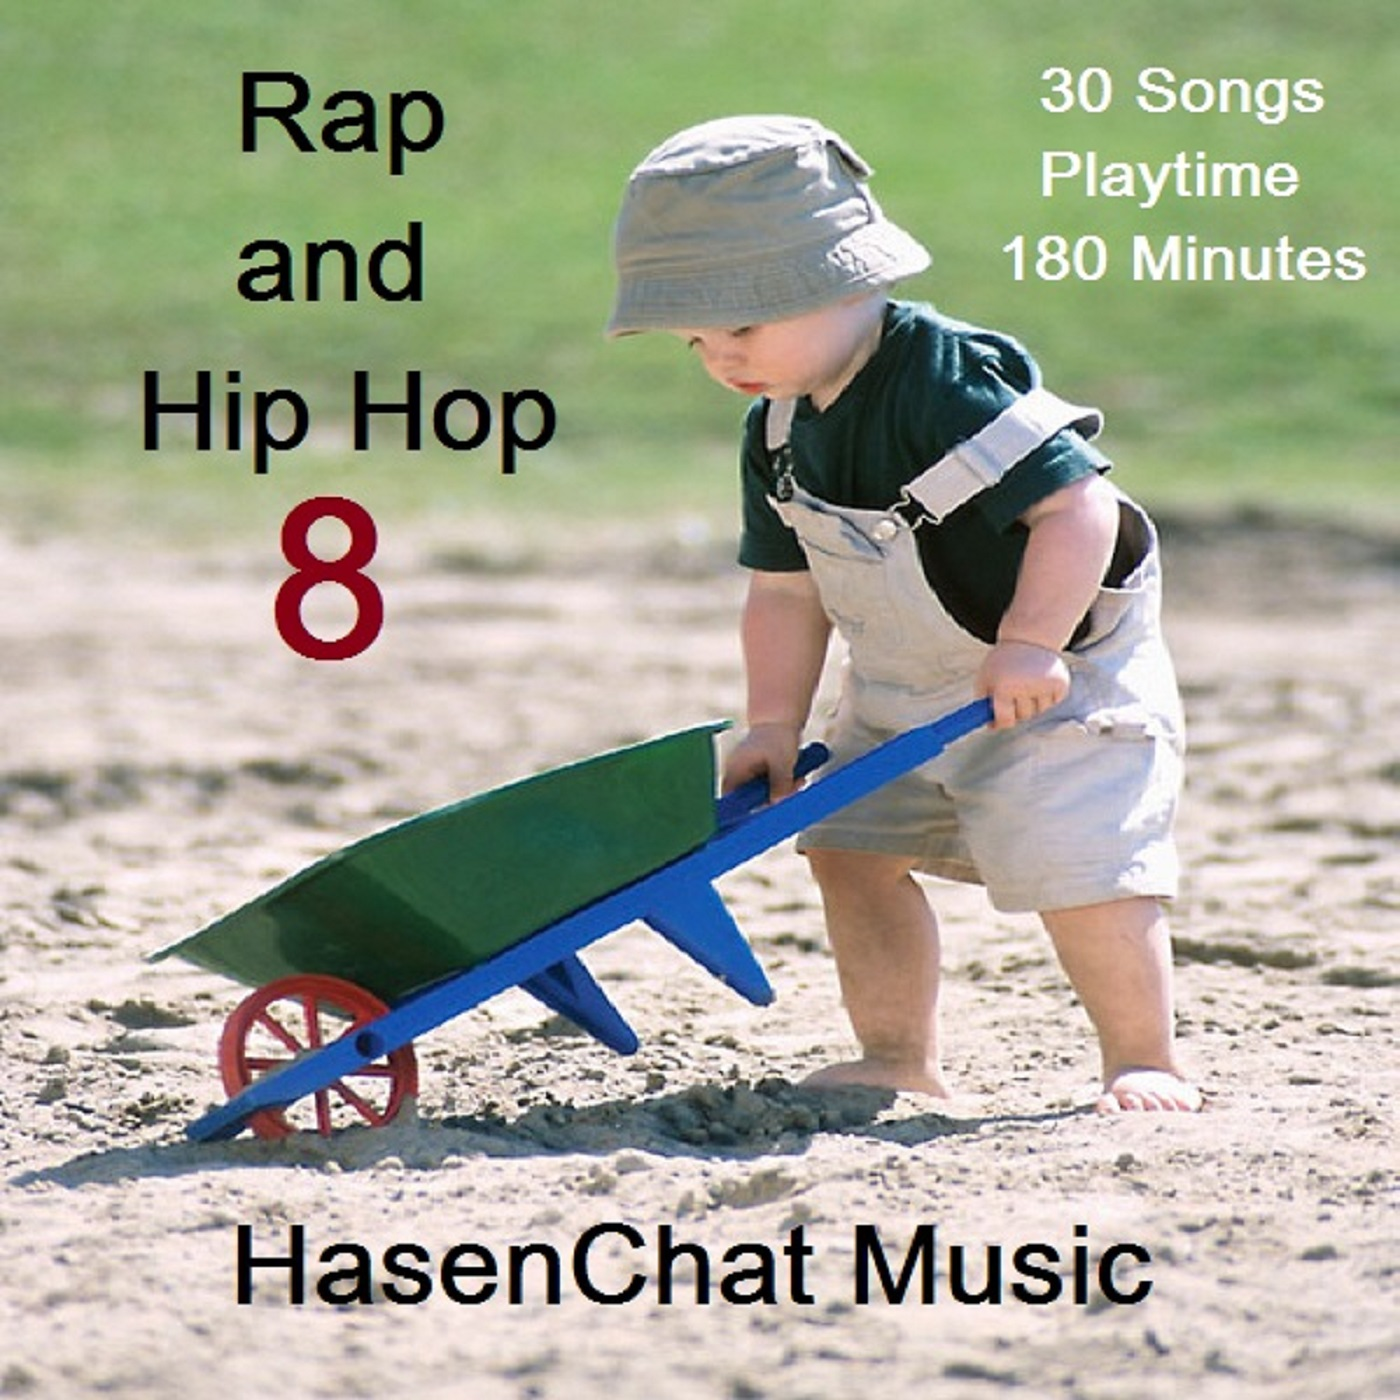 HasenChat Music - Rap and Hip Hop - Episode 8